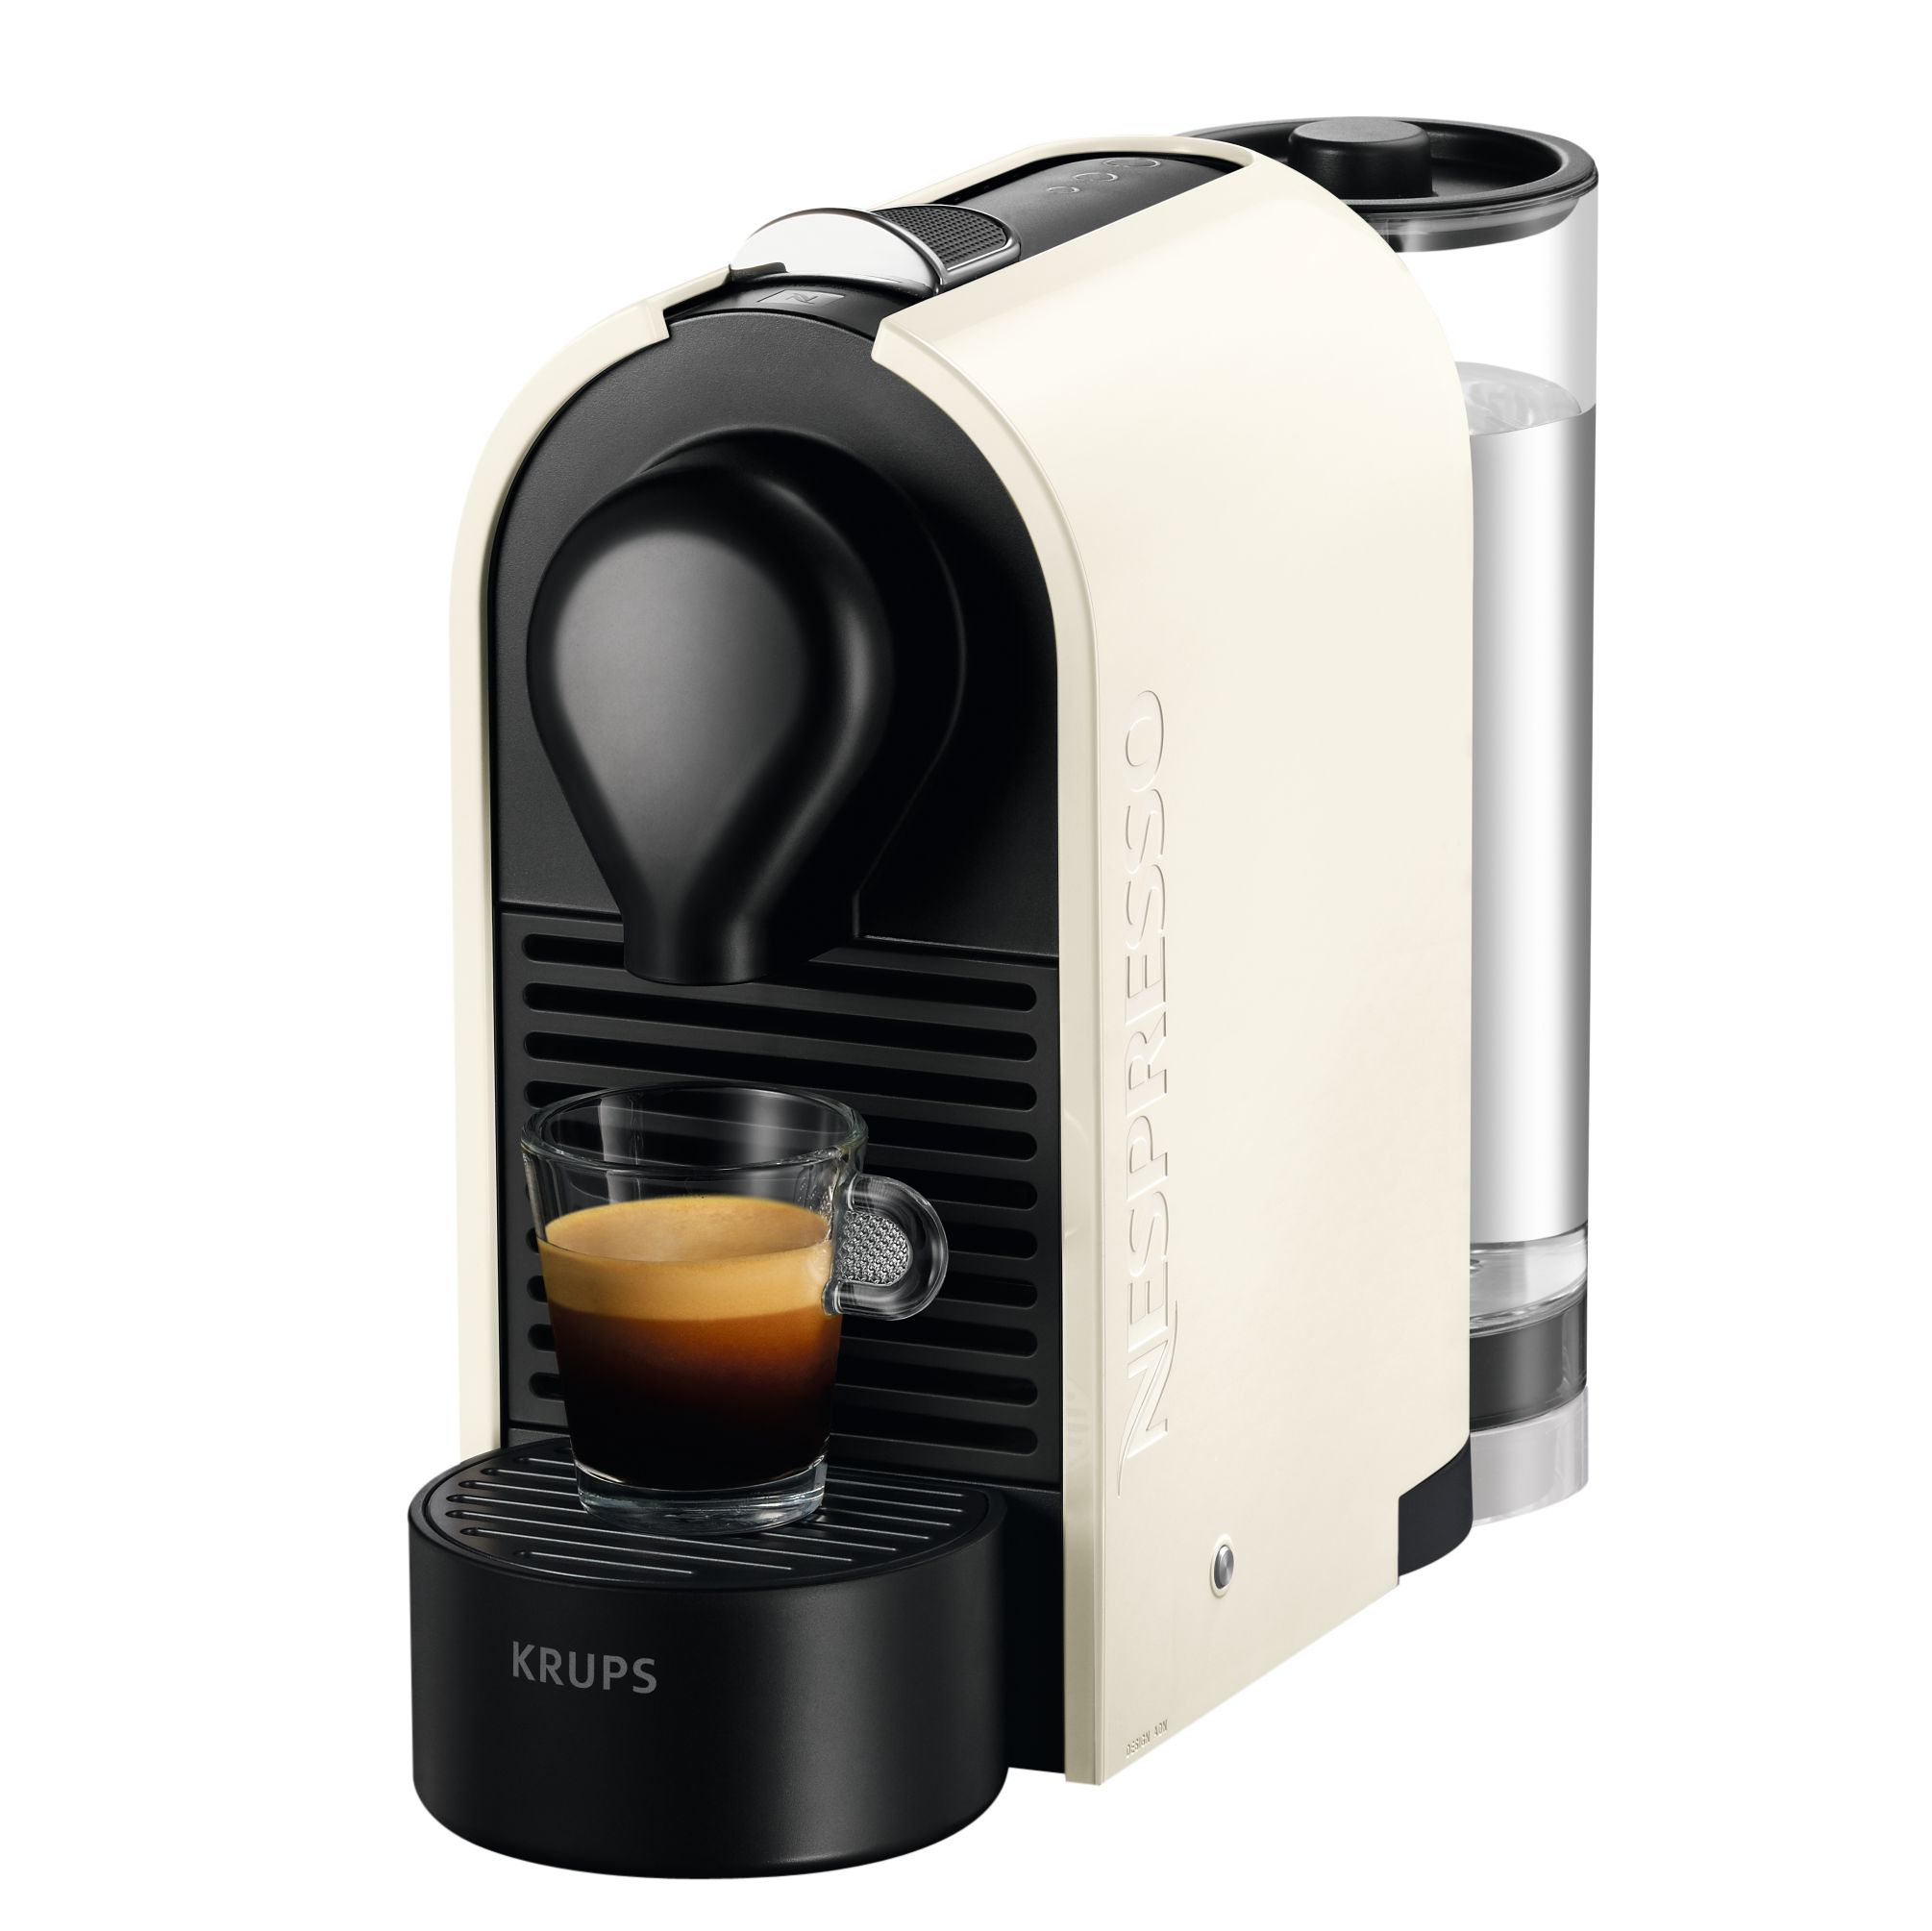 Italian Coffee Maker John Lewis : Buy Nespresso U Coffee Machine by KRUPS John Lewis